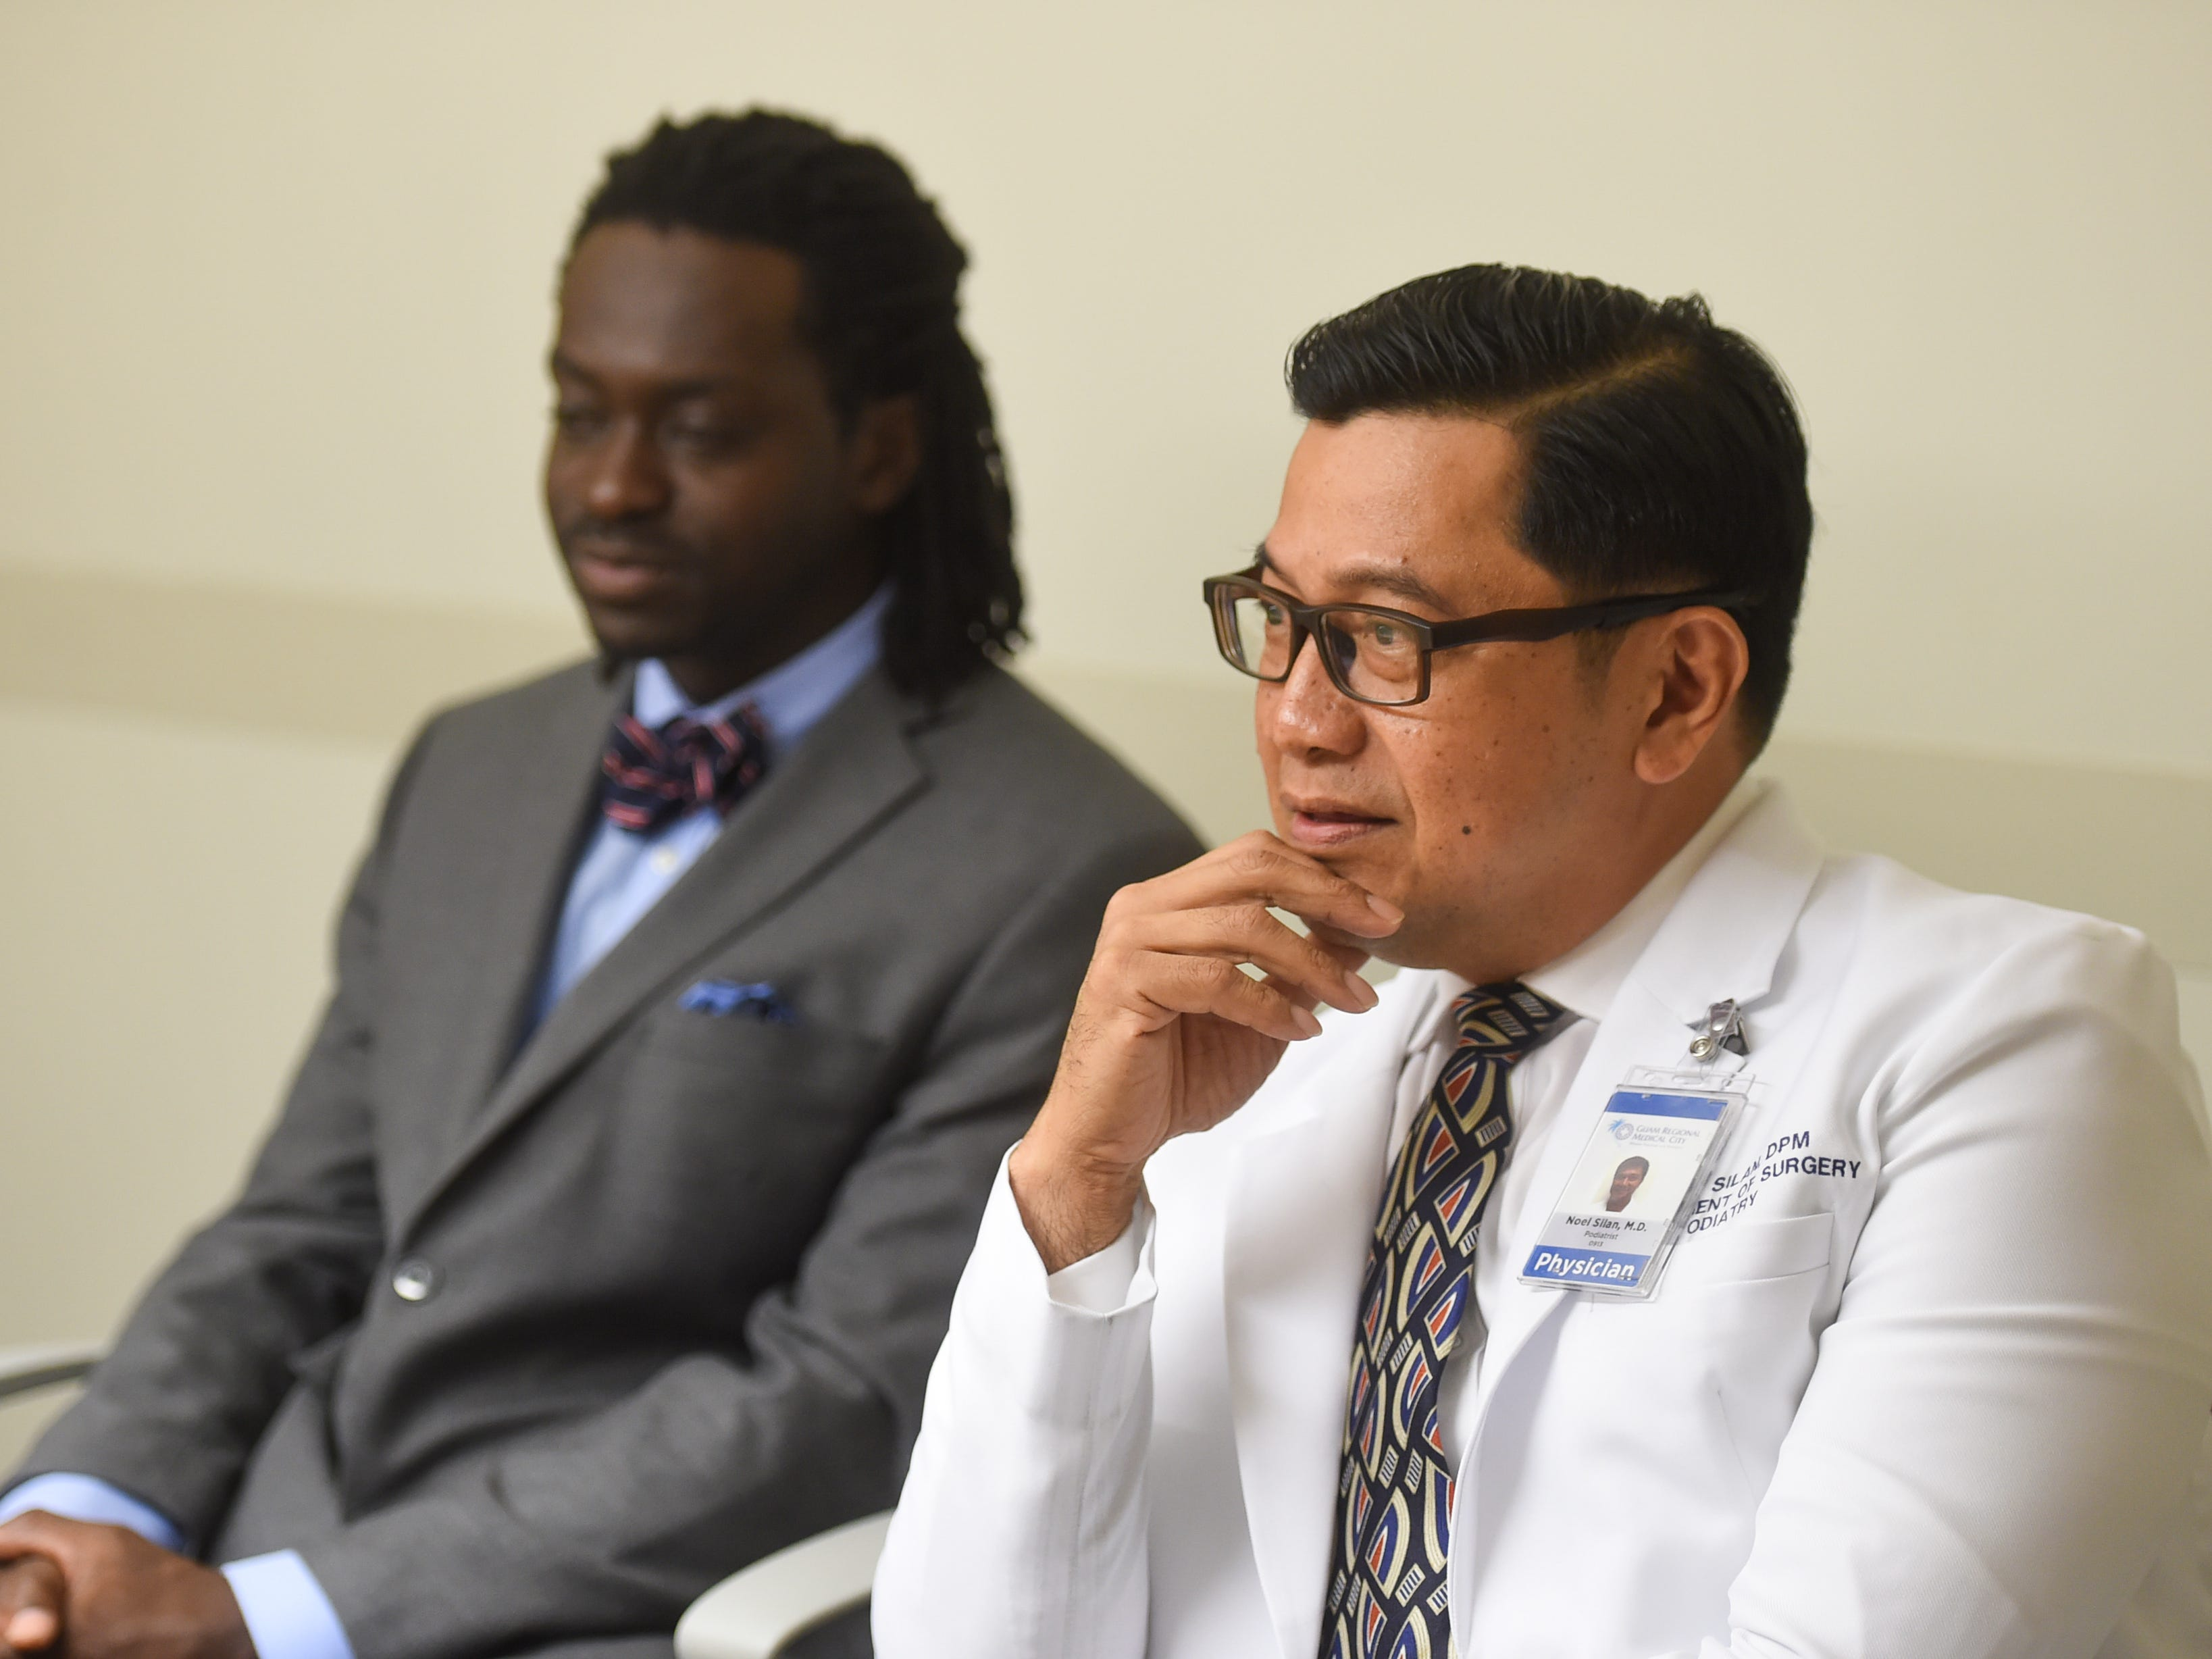 Dr. Noel Silan, right, with Dr. Kwasi Nyame discusses his involvement in the surgery that removed a tumor from the right leg of Cano Collazo-Cruz, 56, during an interview at the Guam Regional Medical City on Feb. 15, 2019.